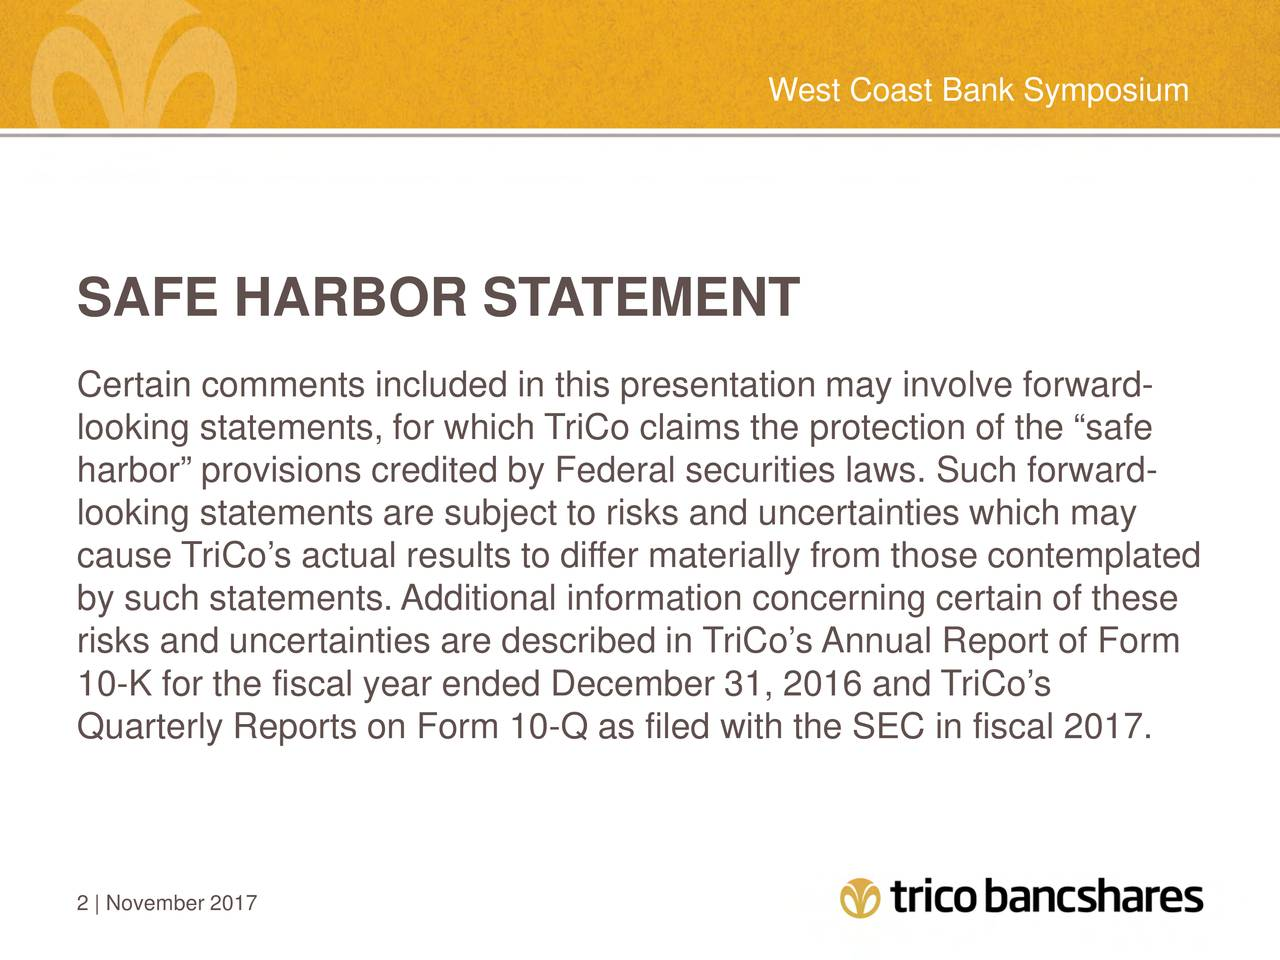 "SAFE HARBOR STATEMENT Certain comments included in this presentation may involve forward- looking statements, for which TriCo claims the protection of the ""safe harbor"" provisions credited by Federal securities laws. Such forward- looking statements are subject to risks and uncertainties which may cause TriCo's actual results to differ materially from those contemplated by such statements. Additional information concerning certain of these risks and uncertainties are described in TriCo's Annual Report of Form 10-K for the fiscal year ended December 31, 2016 and TriCo's Quarterly Reports on Form 10-Q as filed with the SEC in fiscal 2017. 2 